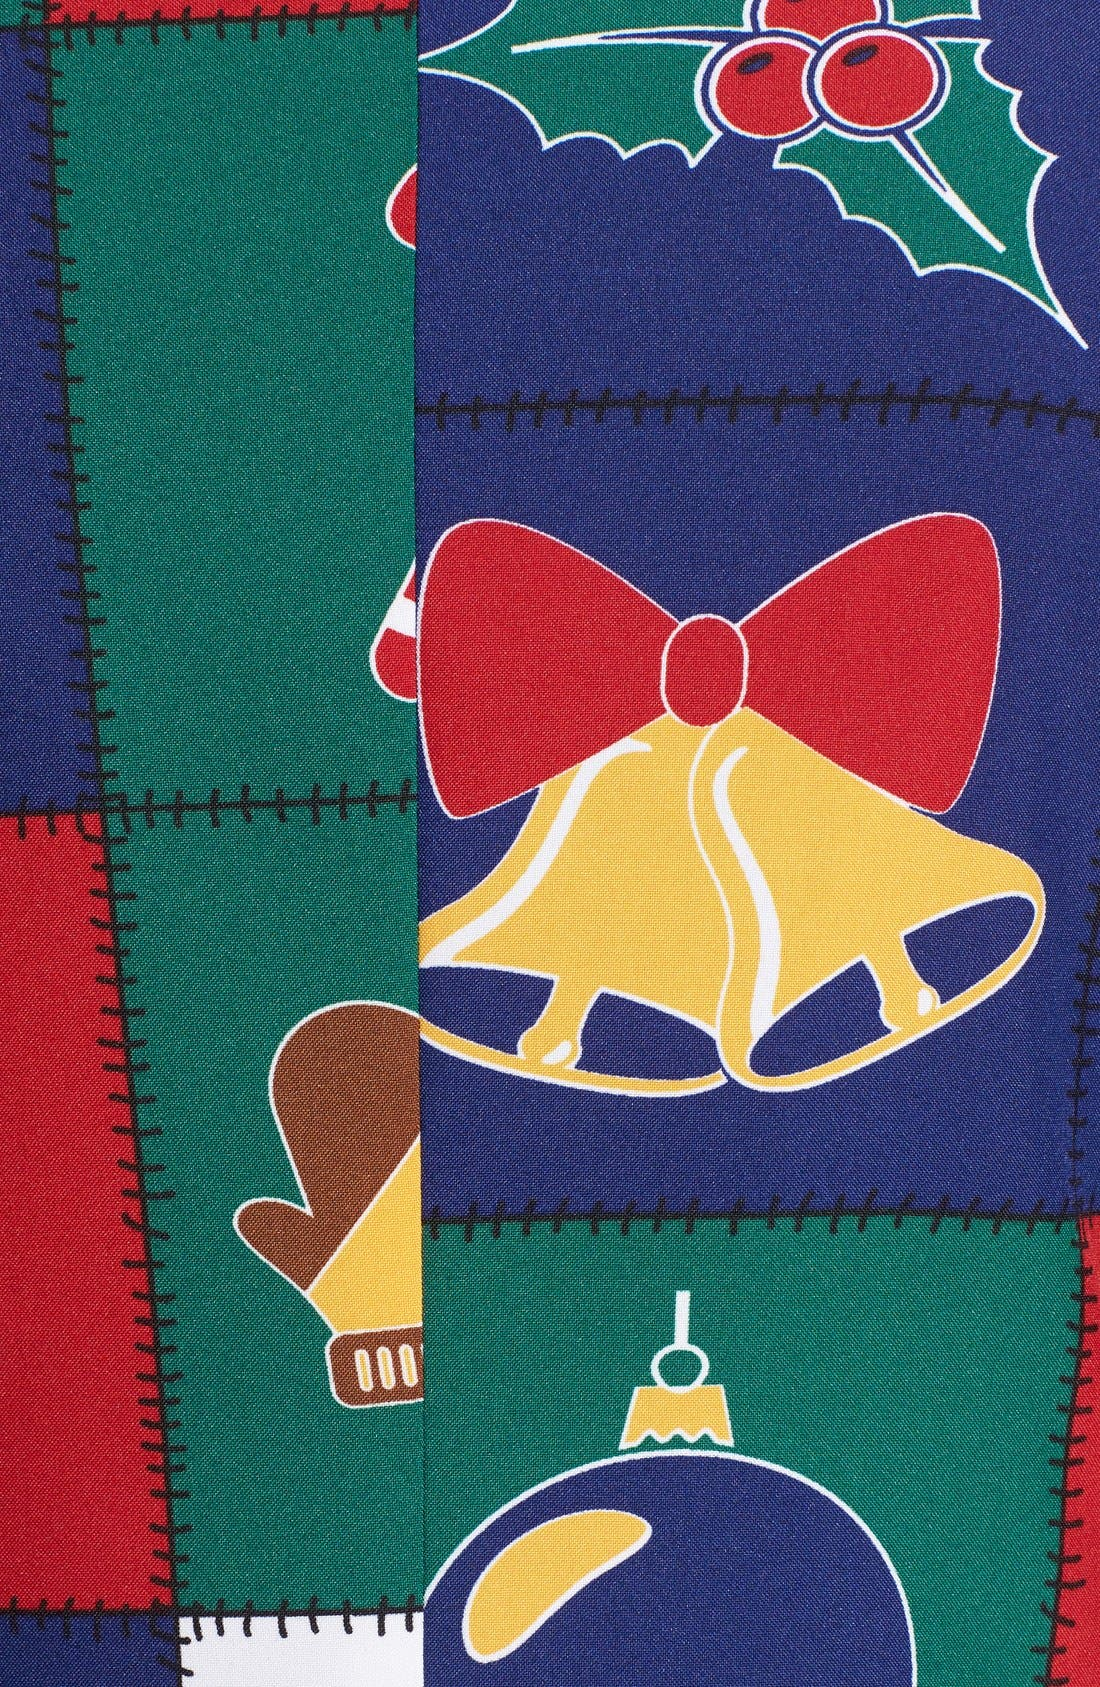 'Quilty Pleasure' Holiday Suit & Tie,                             Alternate thumbnail 7, color,                             Green